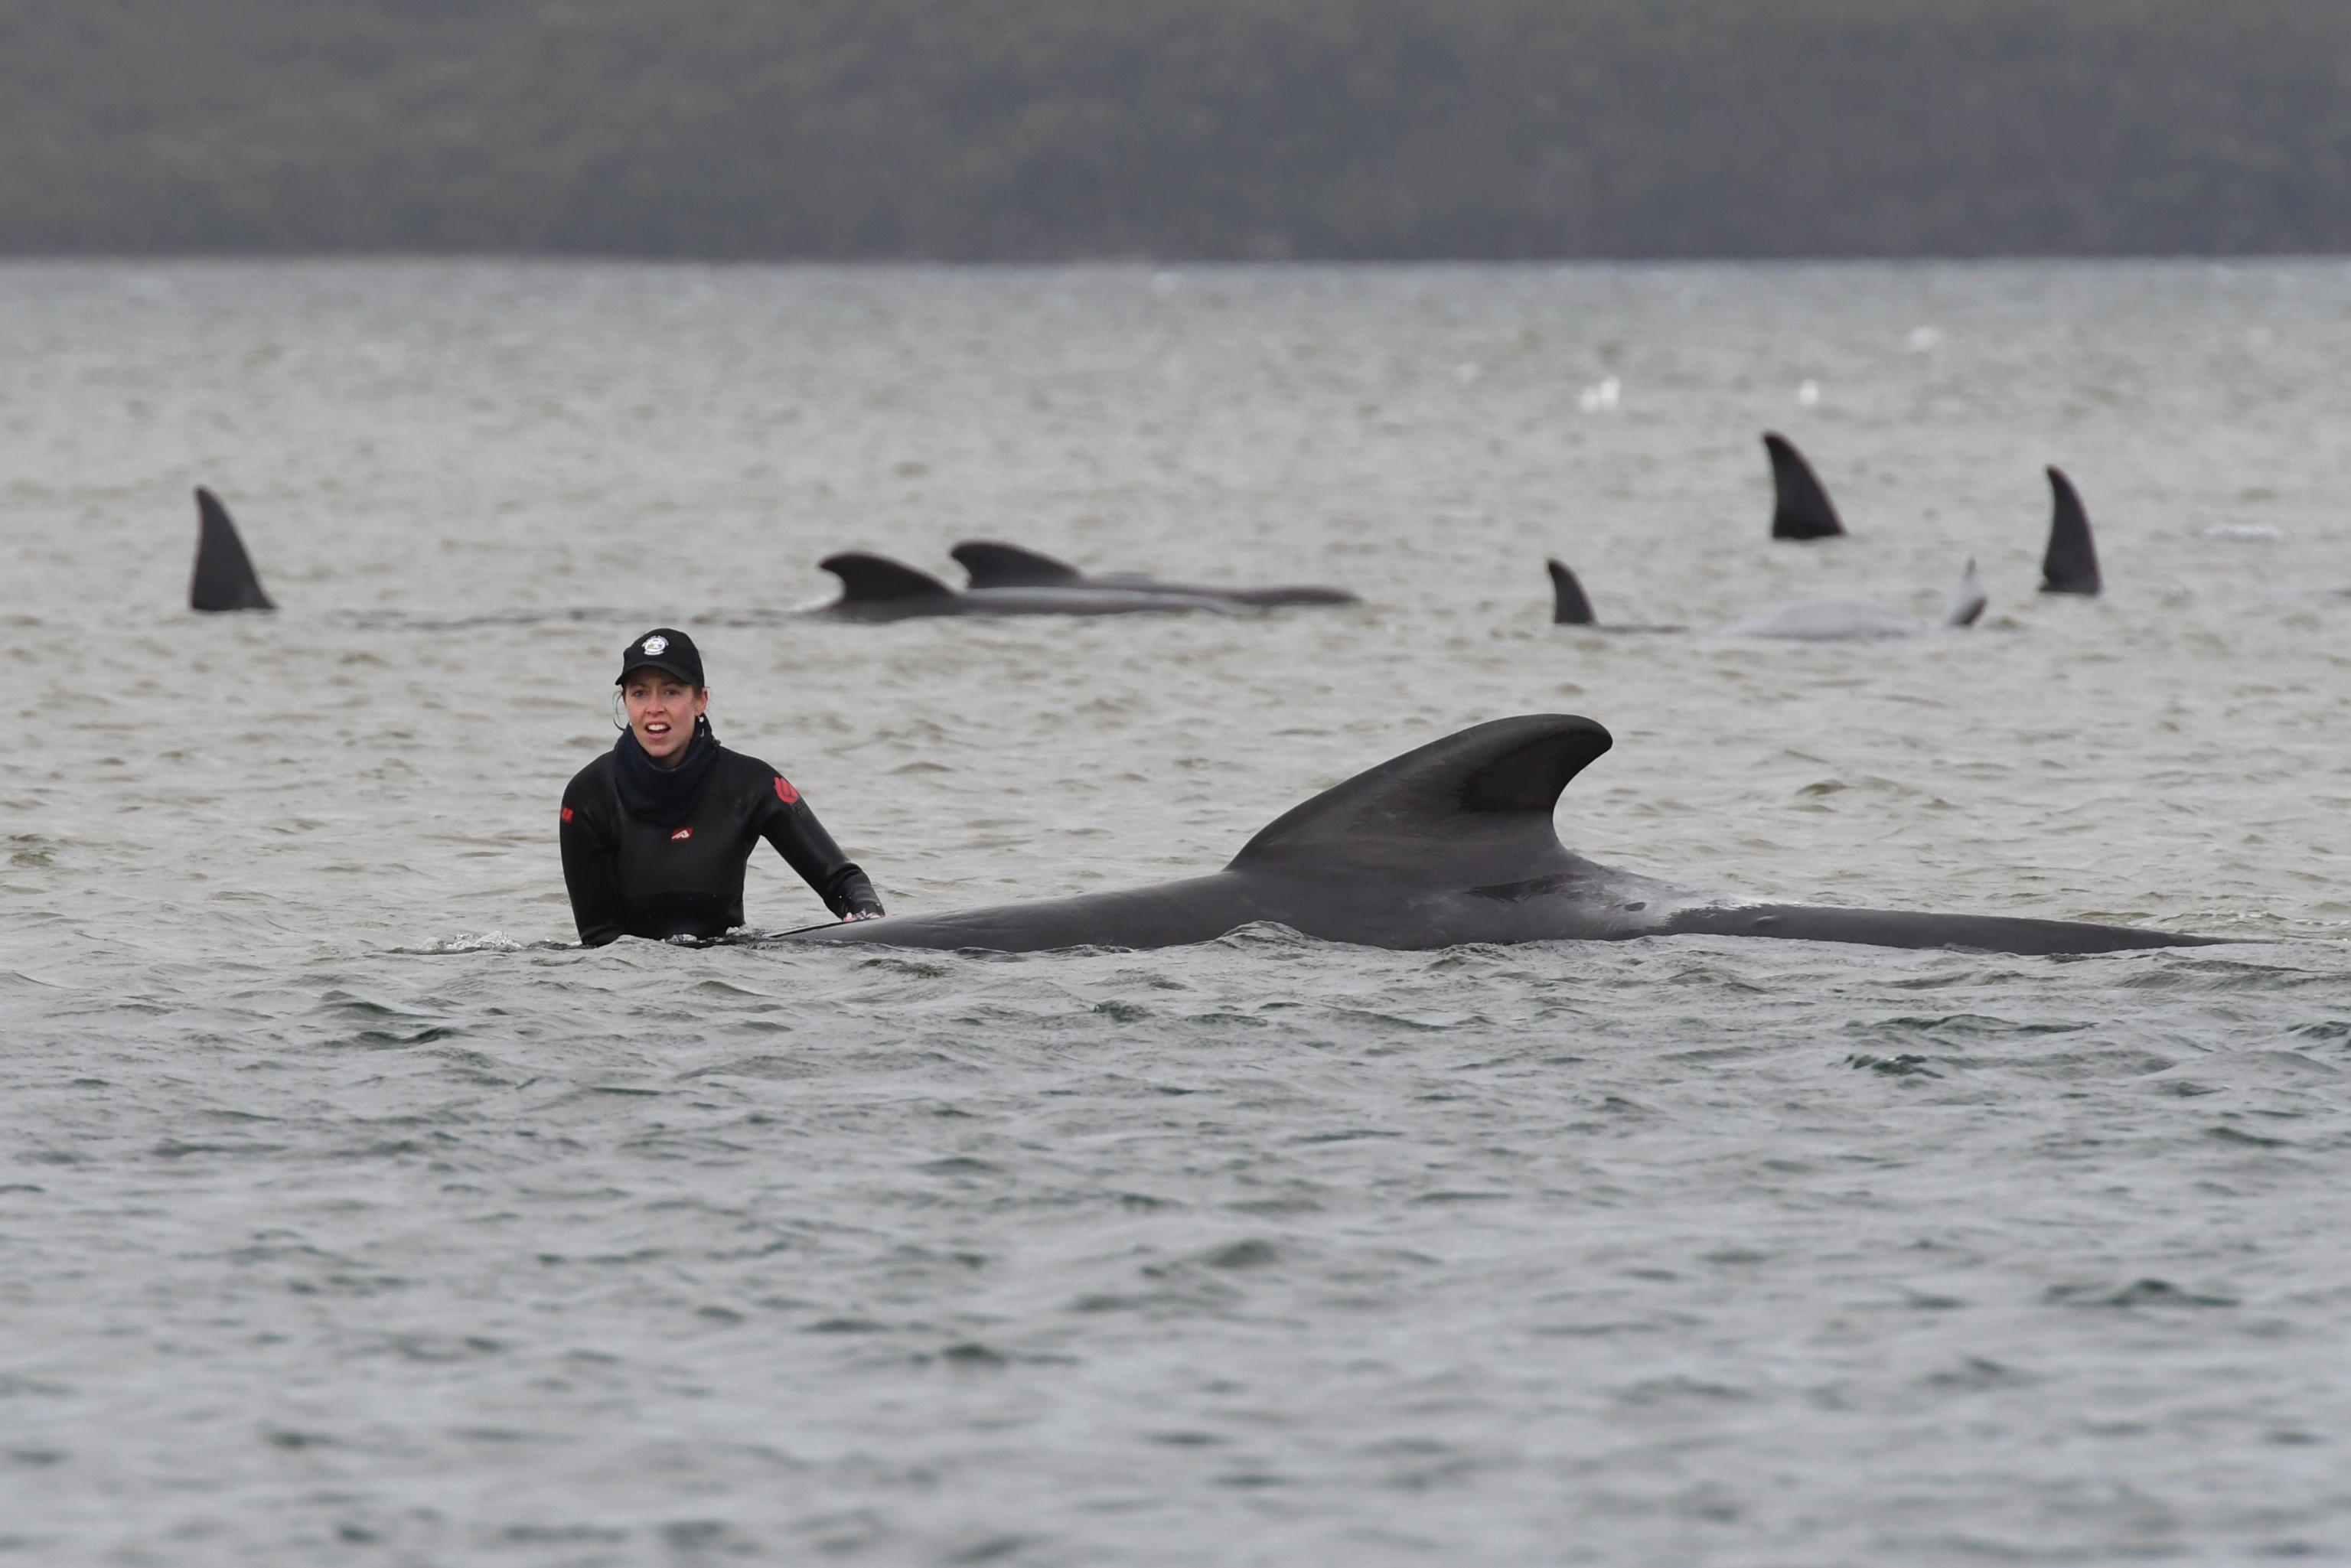 epaselect epa08687623 A person stands next to a stranded pilot whale at Macquarie Harbour, Tasmania, Australia, 22 September 2020. A large rescue mission to save approximately 270 pilot whales has begun. According to reports 90 whales have perished.  EPA/BRODIE WEEDING / POOLL AUSTRALIA AND NEW ZEALAND OUT